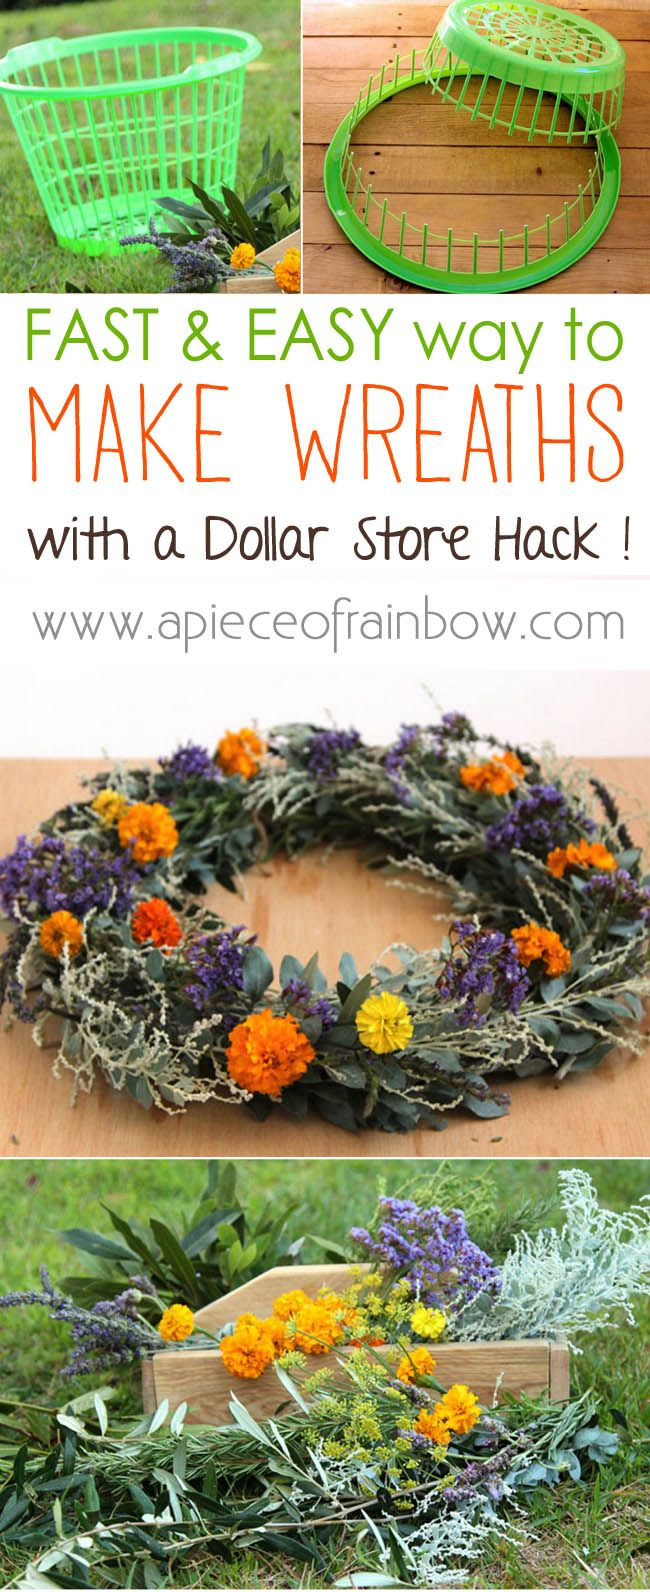 How to Make Wreath Super Fast  Easy: A Dollar Store Hack - turn a laundry basket into wreath makers that can be used again and again! - A Piece Of Rainbow